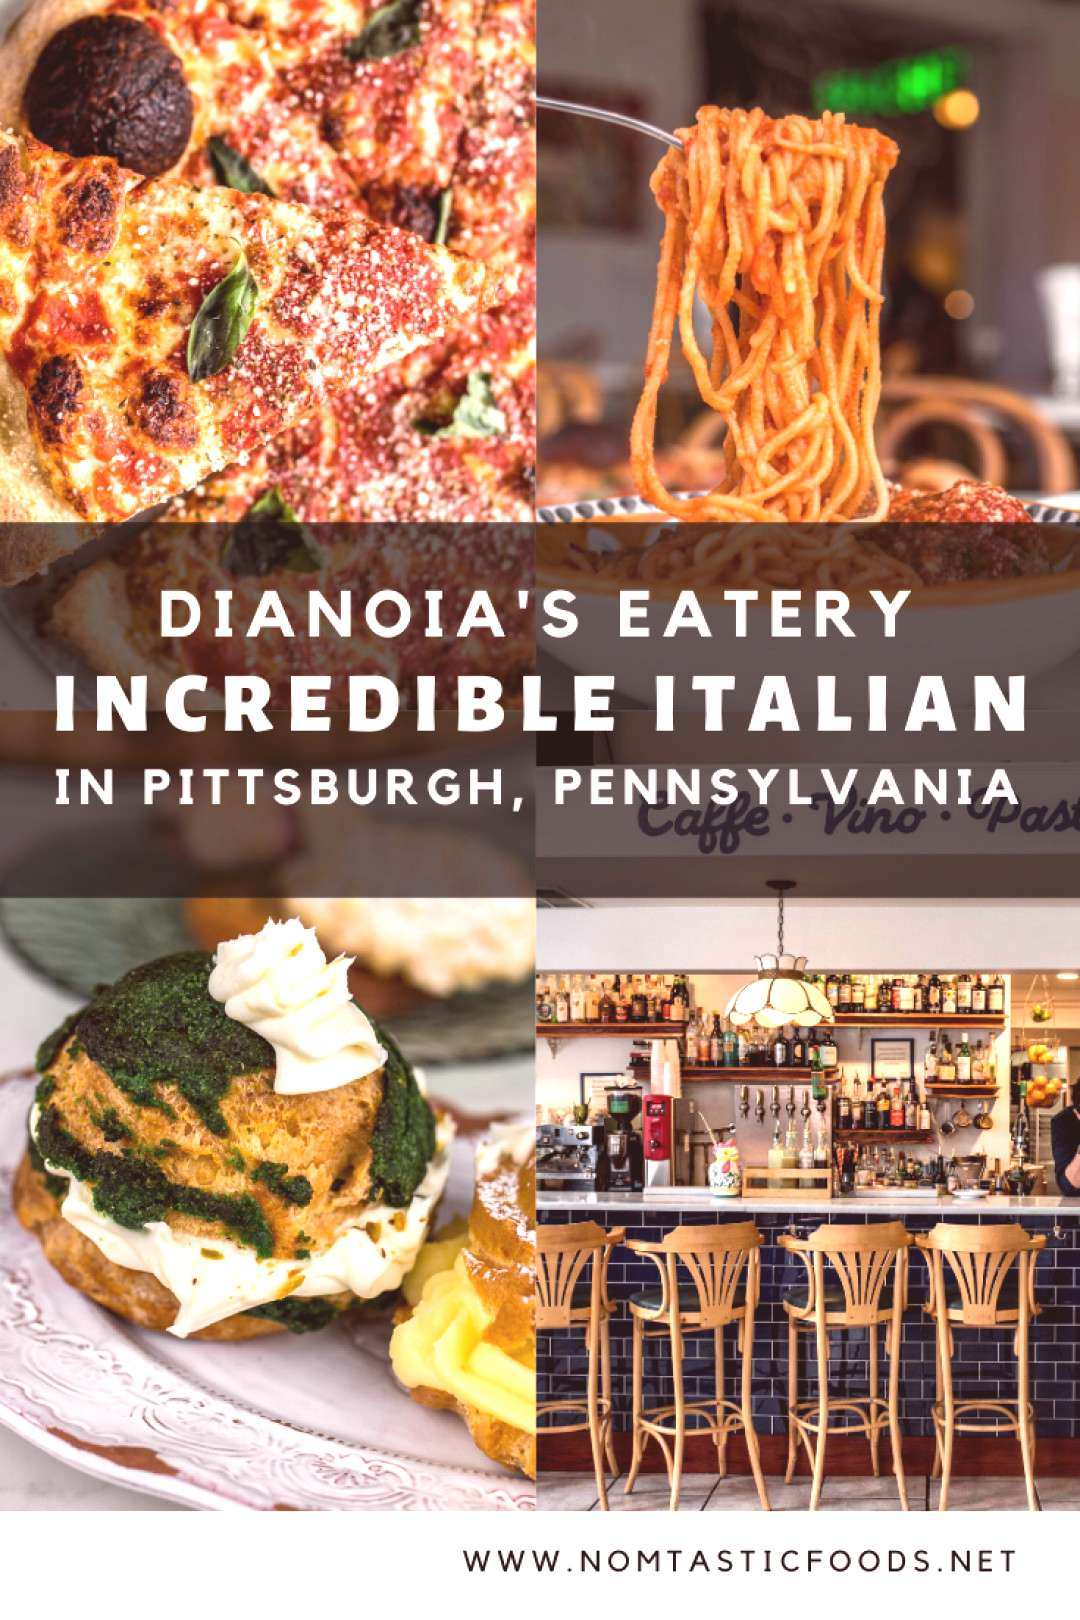 DiAnoias Eatery Delicious Italian Food in Pittsburgh - Nomtastic Foods Looking for delicious Ital